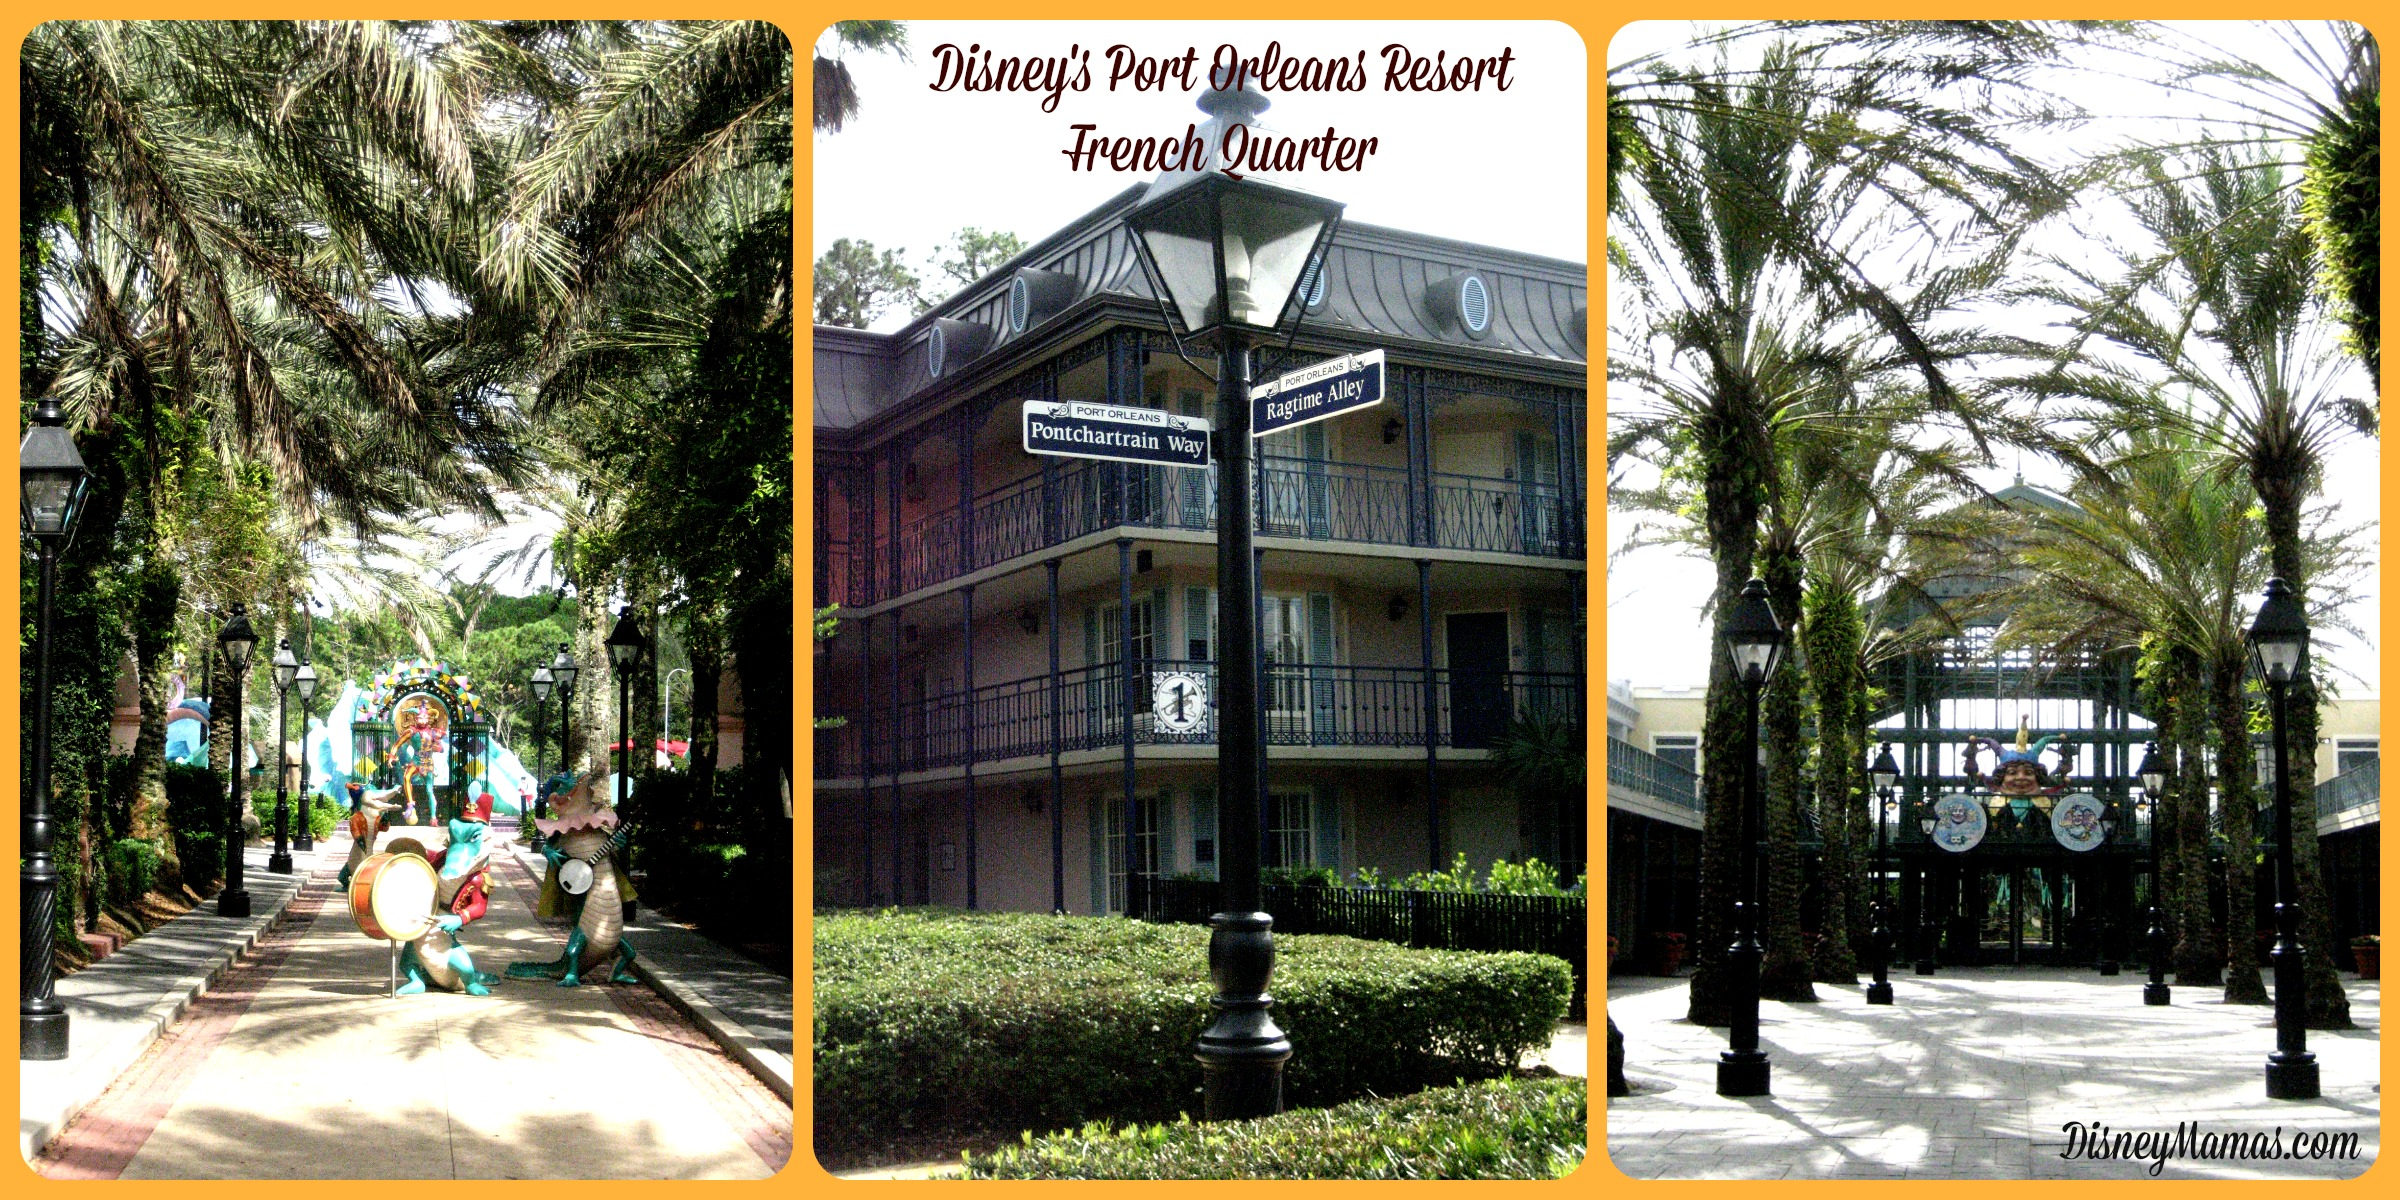 Disney's Port Orleans French Quarter offers beautifully maintained grounds.